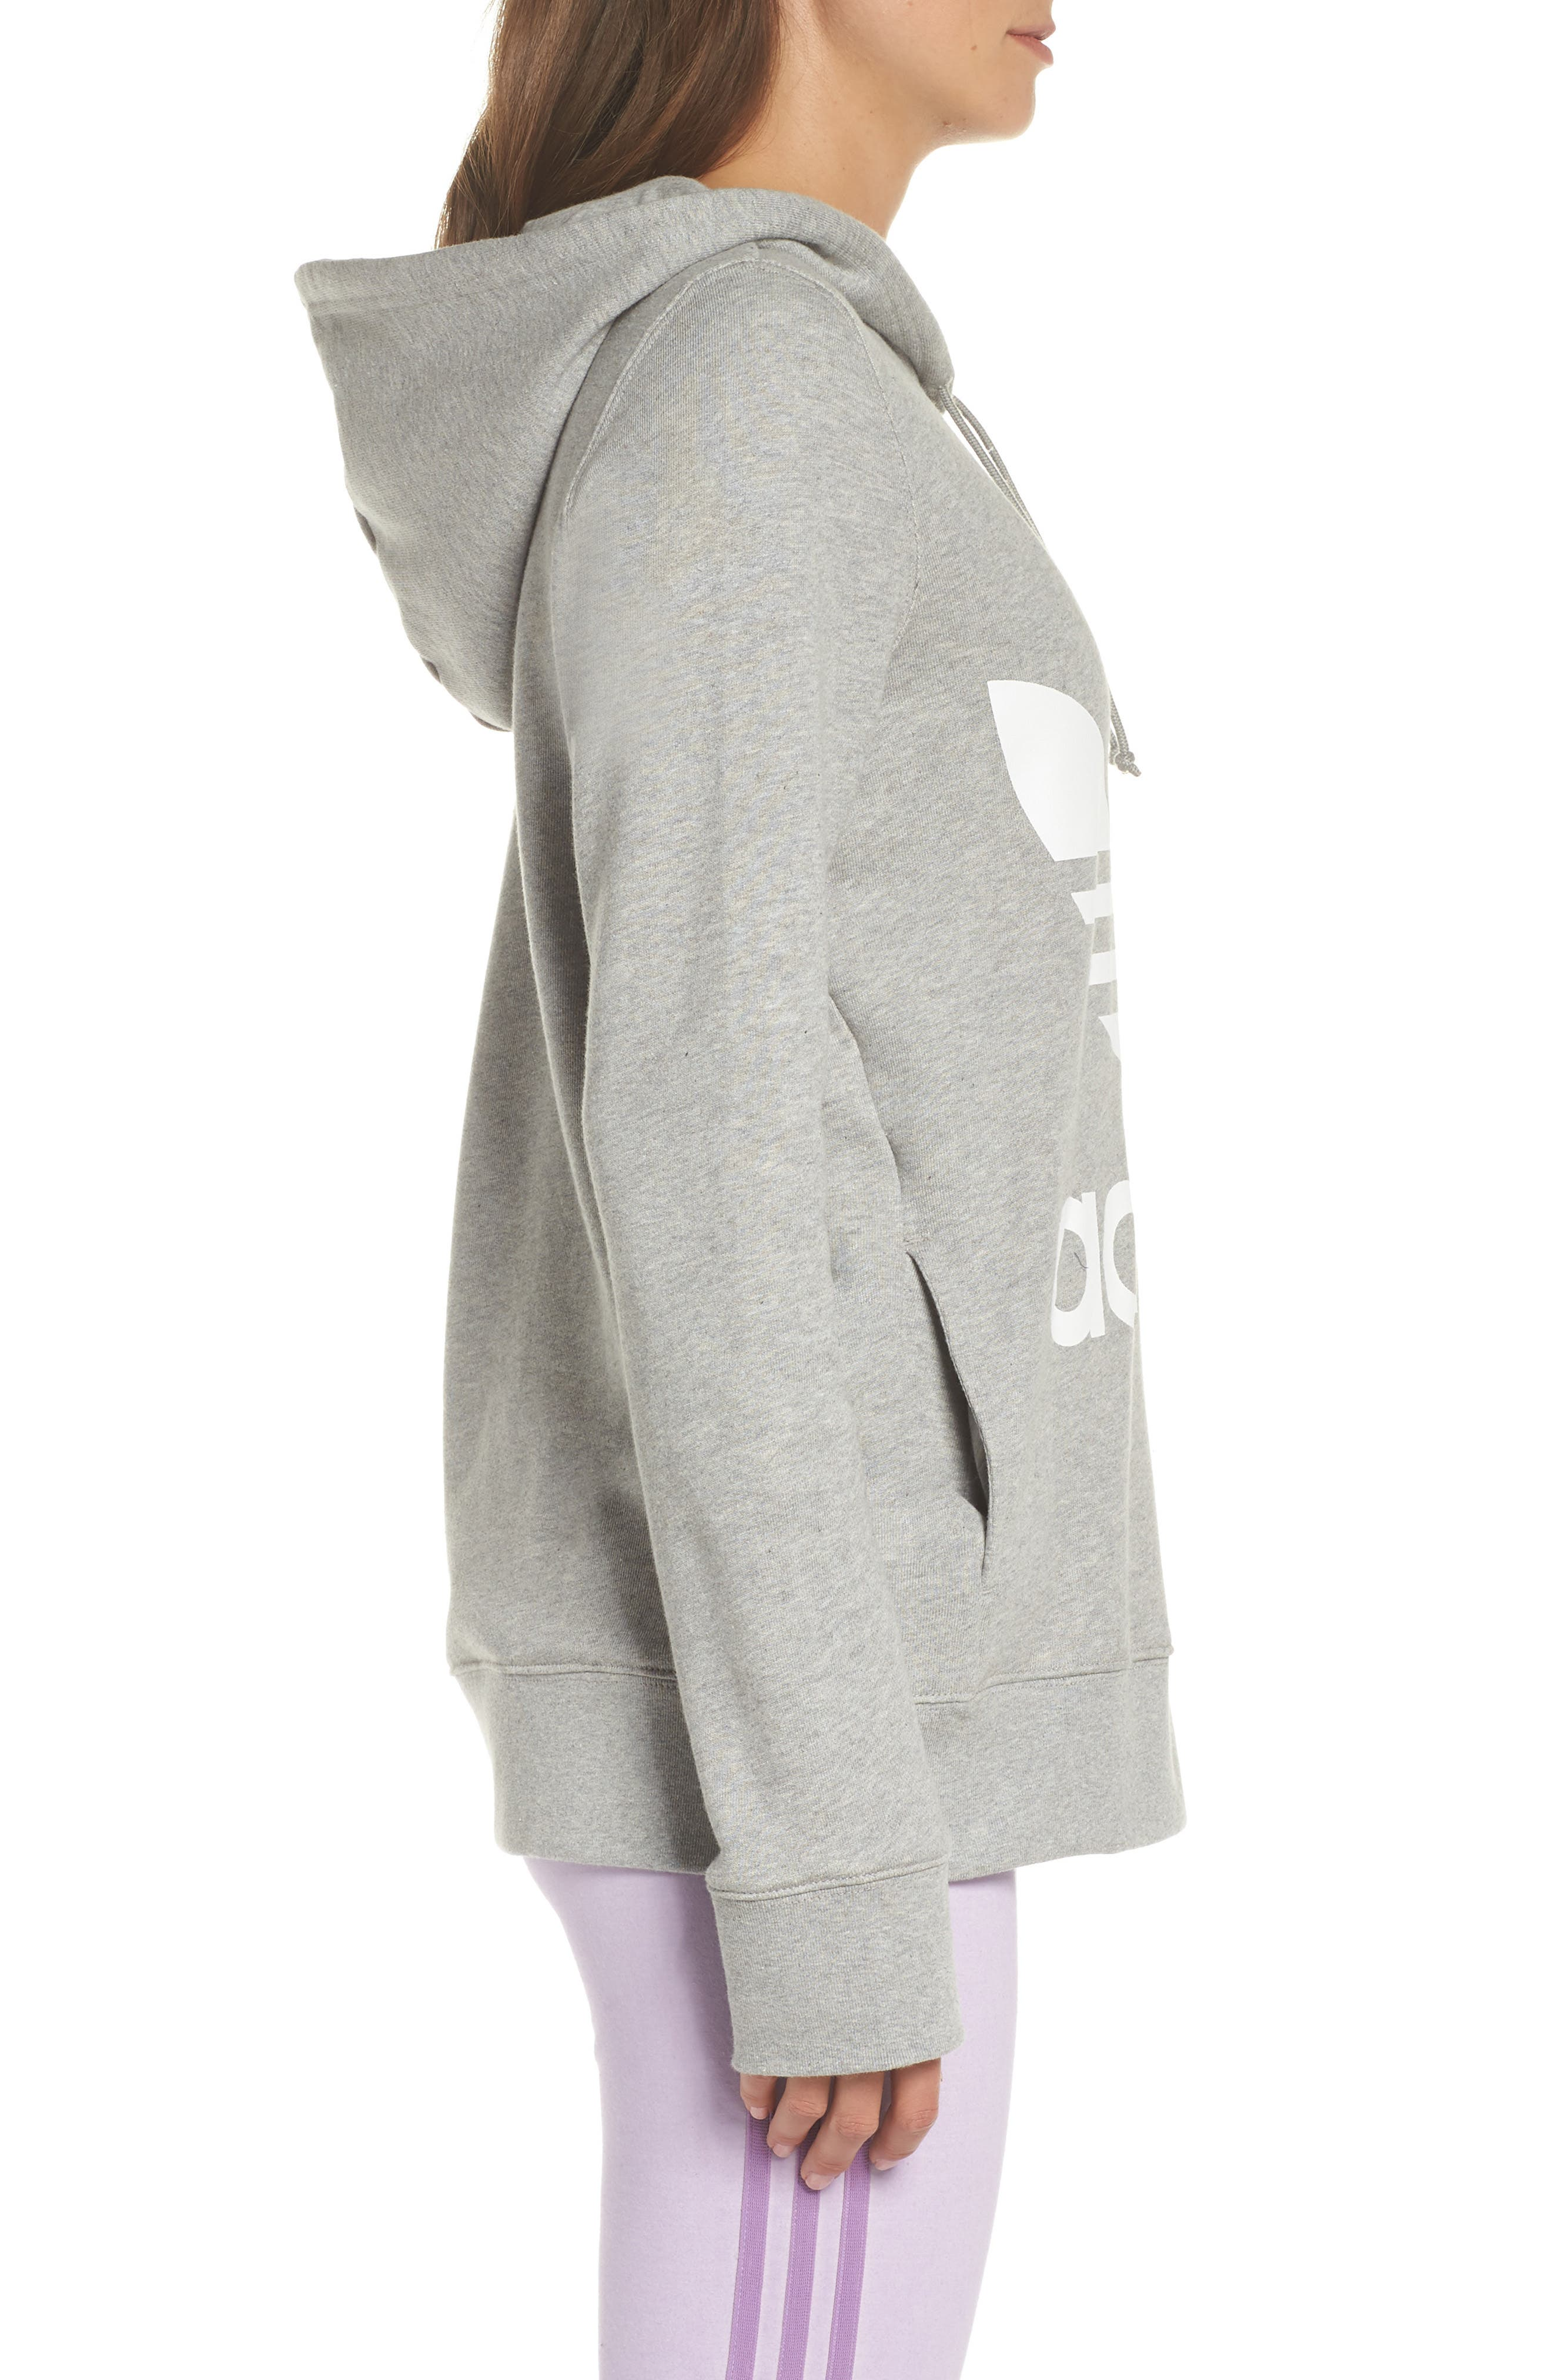 ADIDAS ORIGINALS, Trefoil Hoodie, Alternate thumbnail 4, color, MEDIUM GREY HEATHER